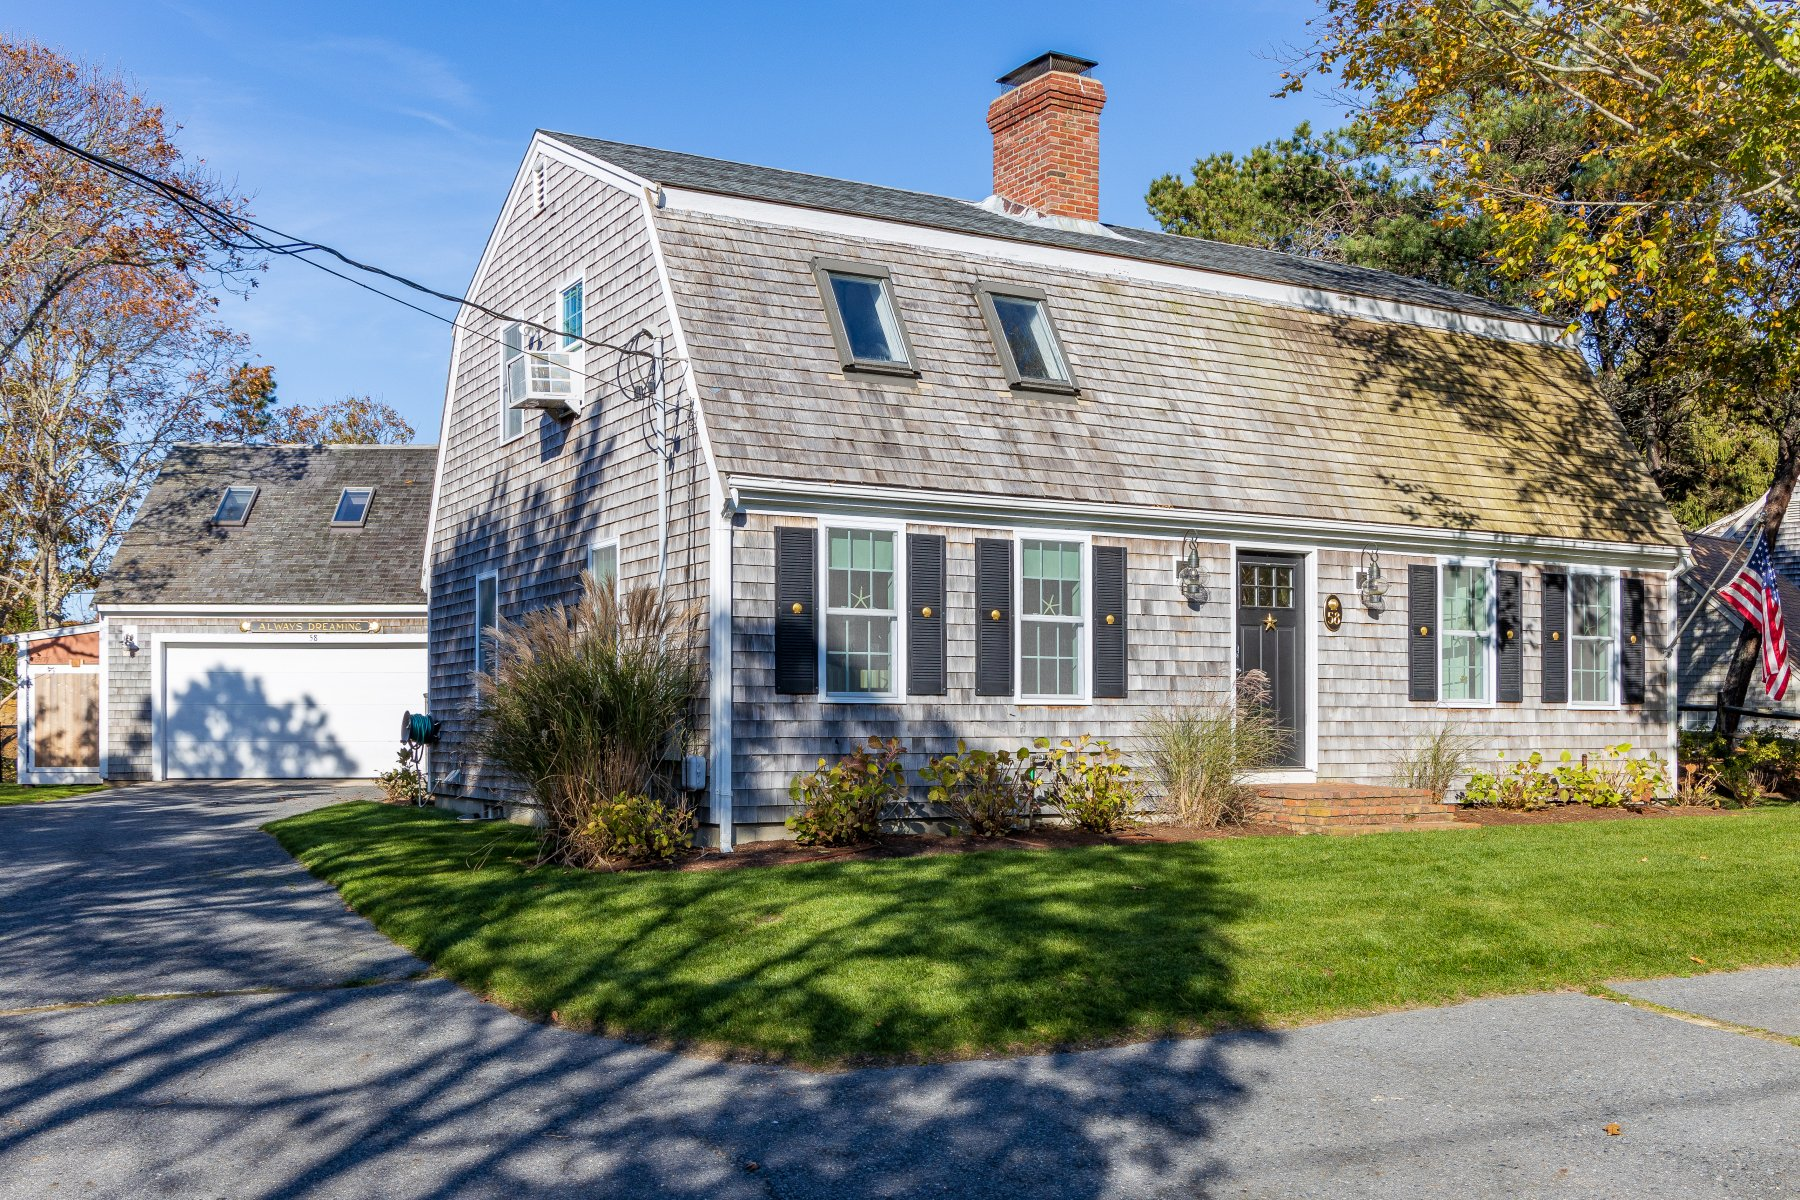 Single Family Homes for Sale at 58 Agnes Lane, Chatham, MA 02633 58 Agnes Lane Chatham, Massachusetts 02633 United States